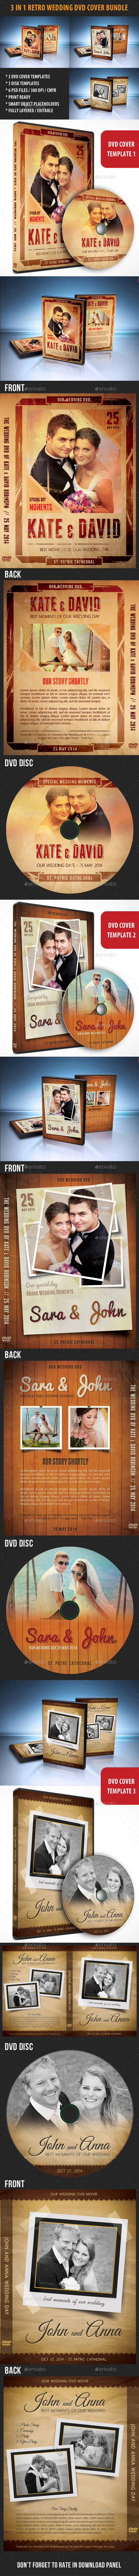 GraphicRiver 3 in 1 Retro Wedding DVD Cover Bundle 9194607